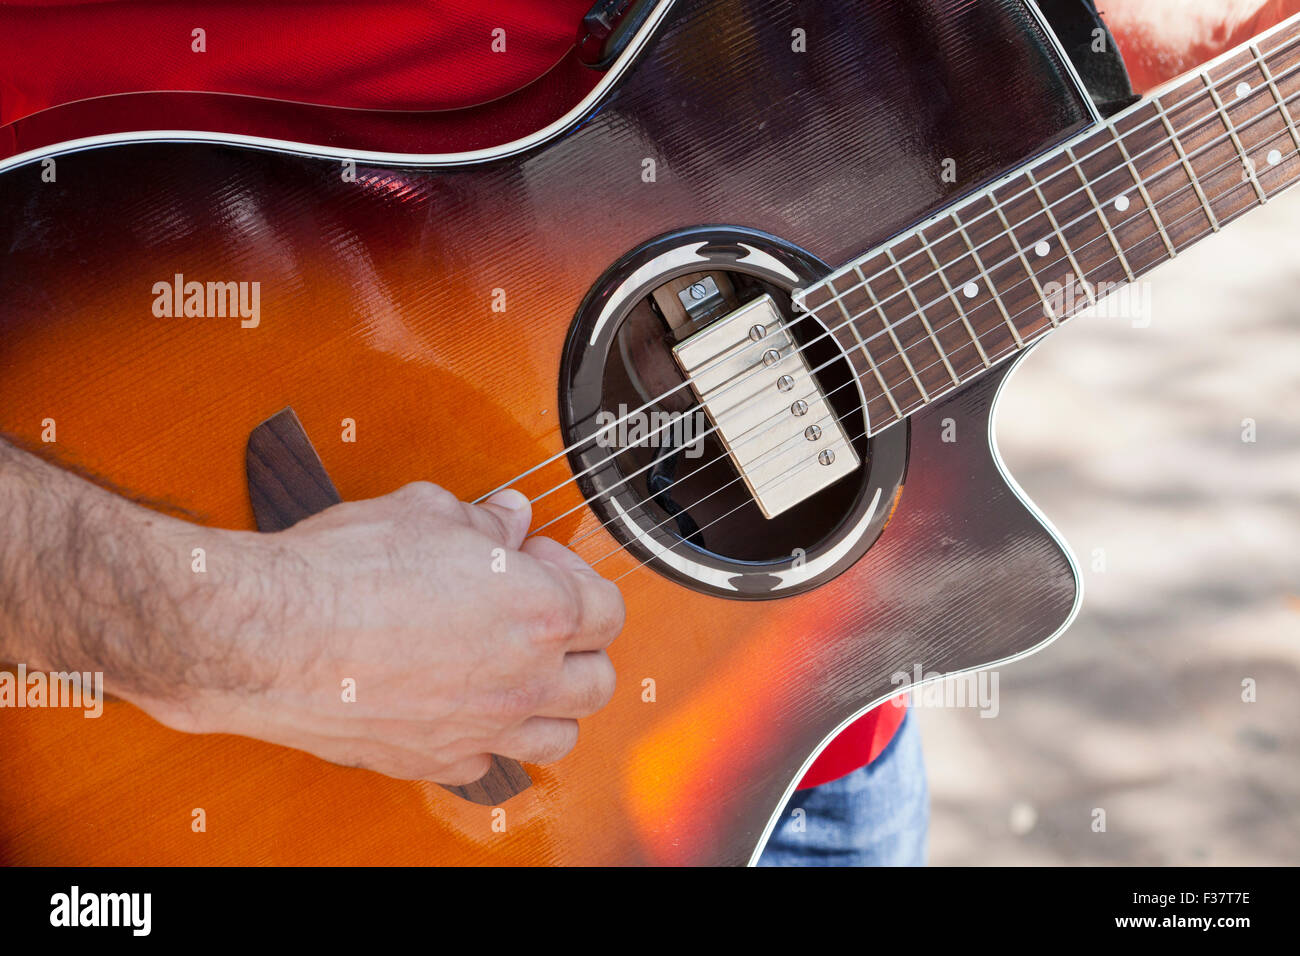 Man playing acoustic-electric guitar - USA - Stock Image